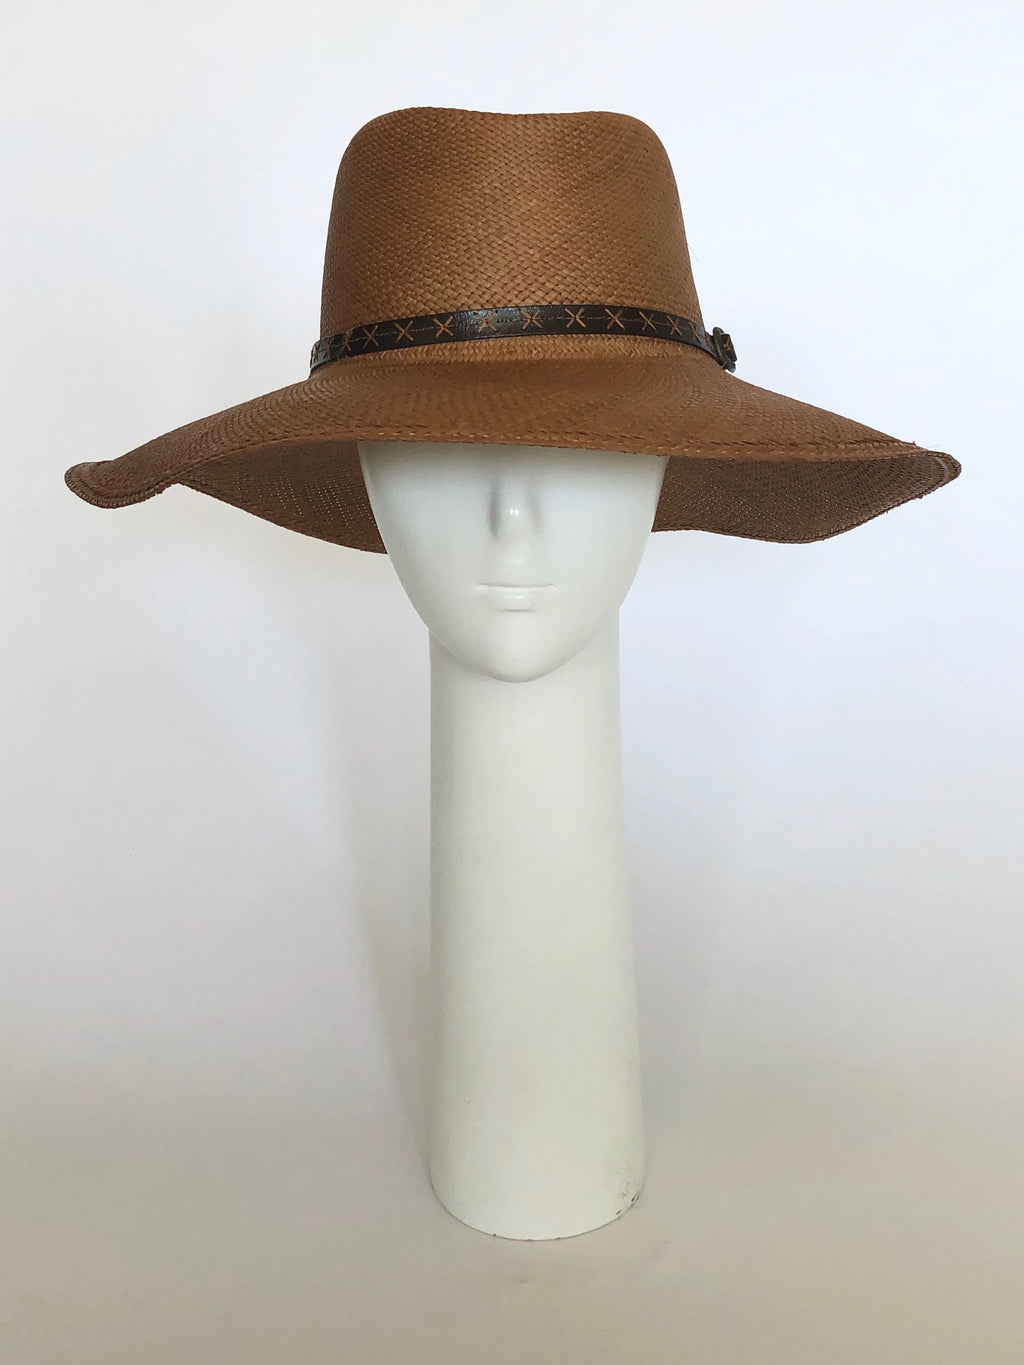 Cocoa Straw Hat with Black Leather Band